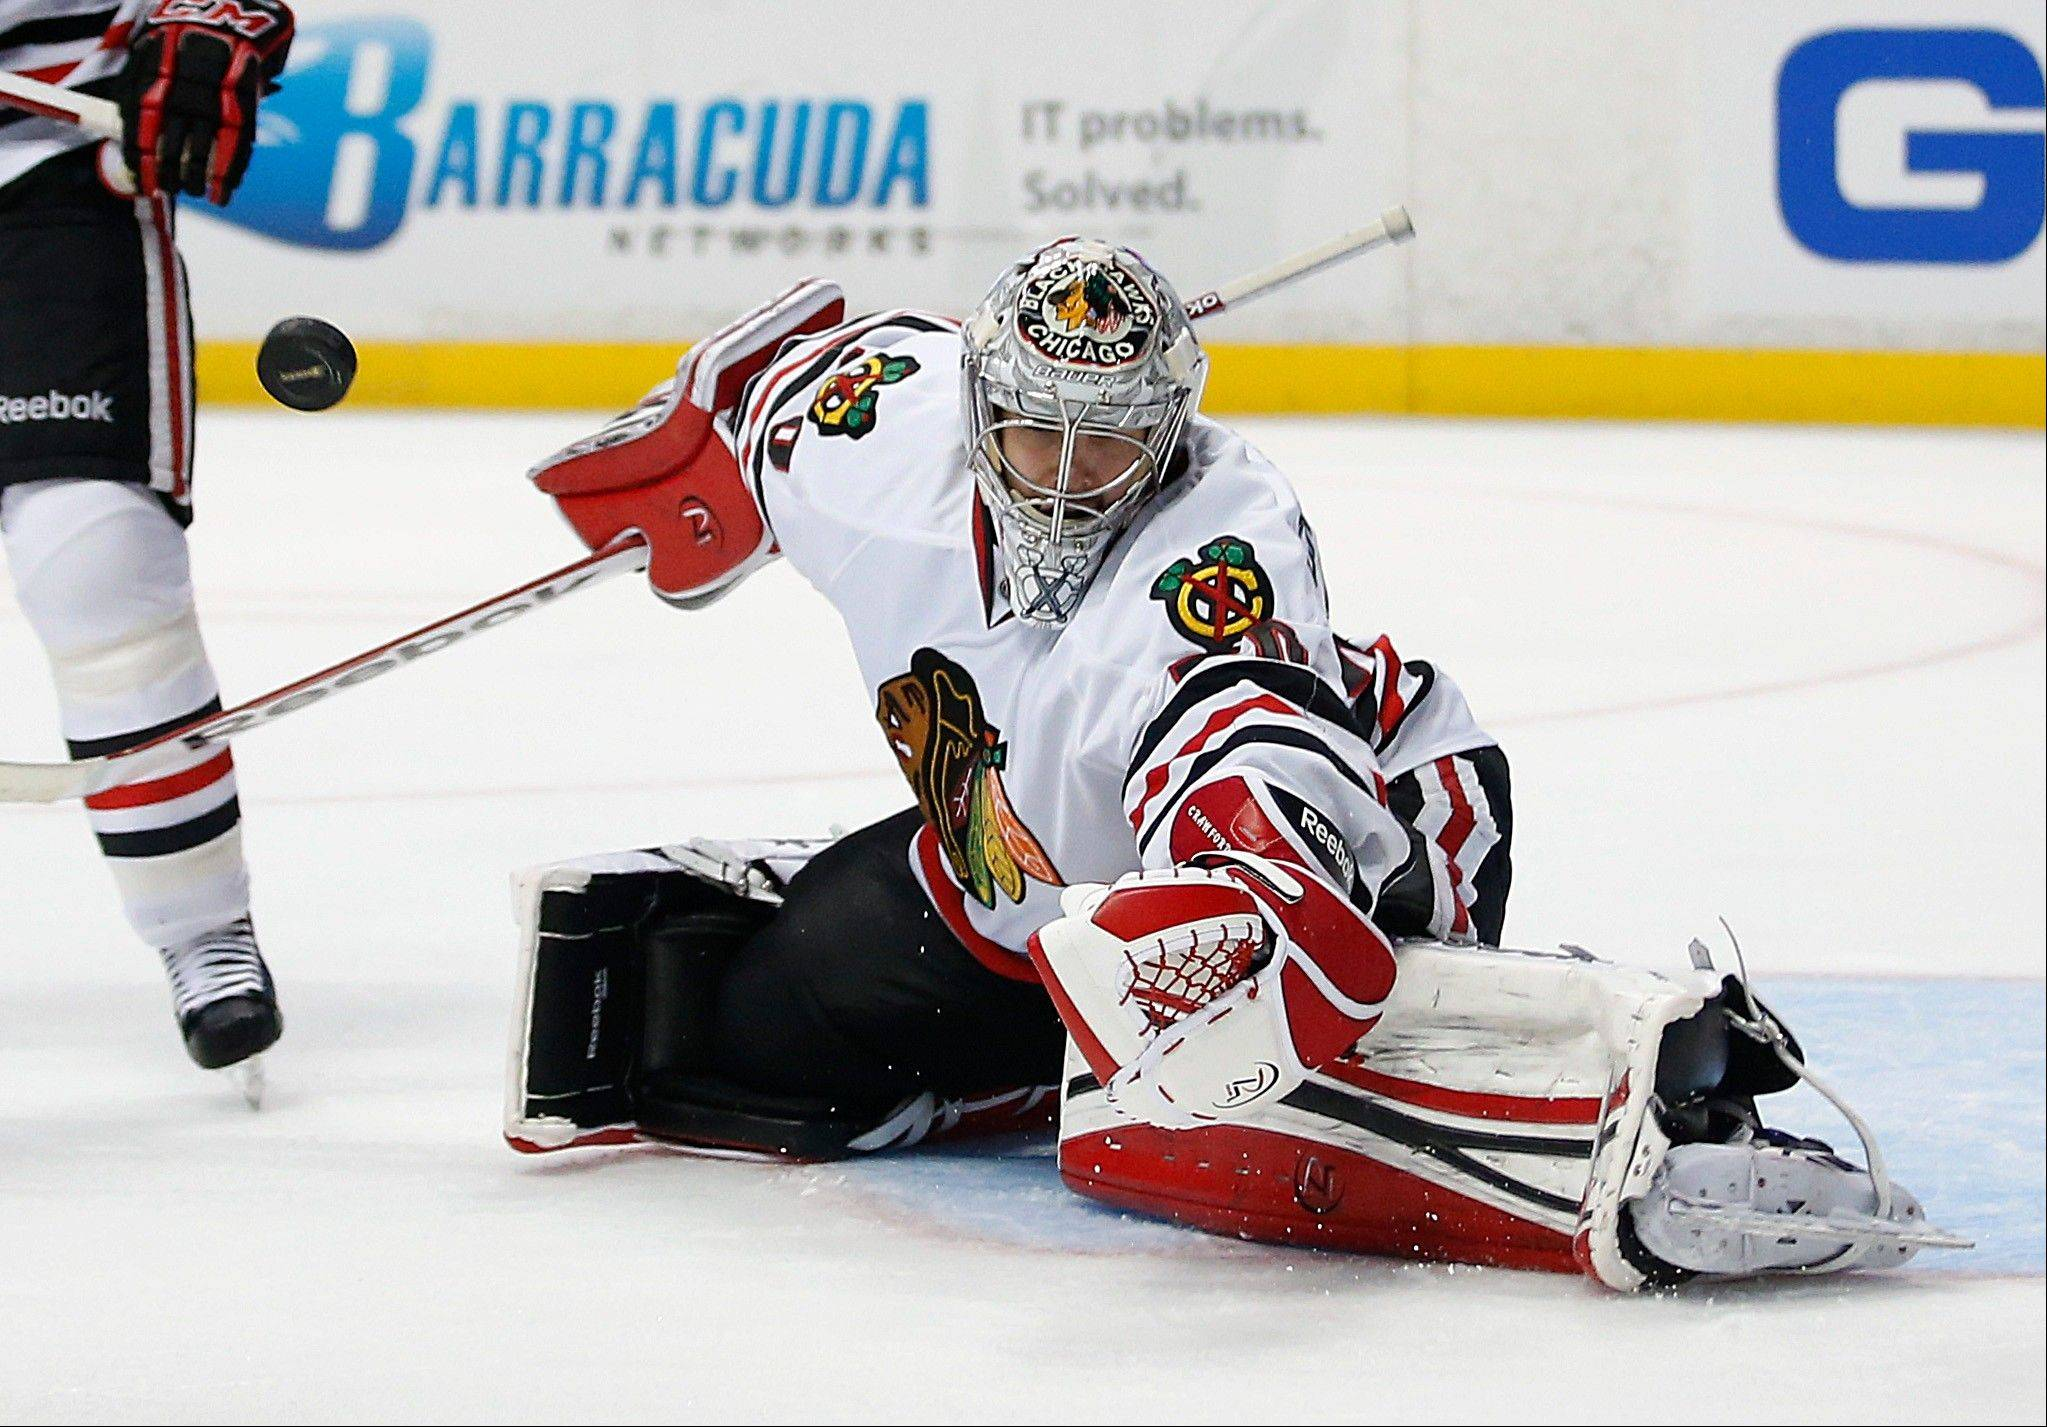 Blackhawks goalie Corey Crawford says he doesn't think a high-scoring game is something that makes for exciting hockey.